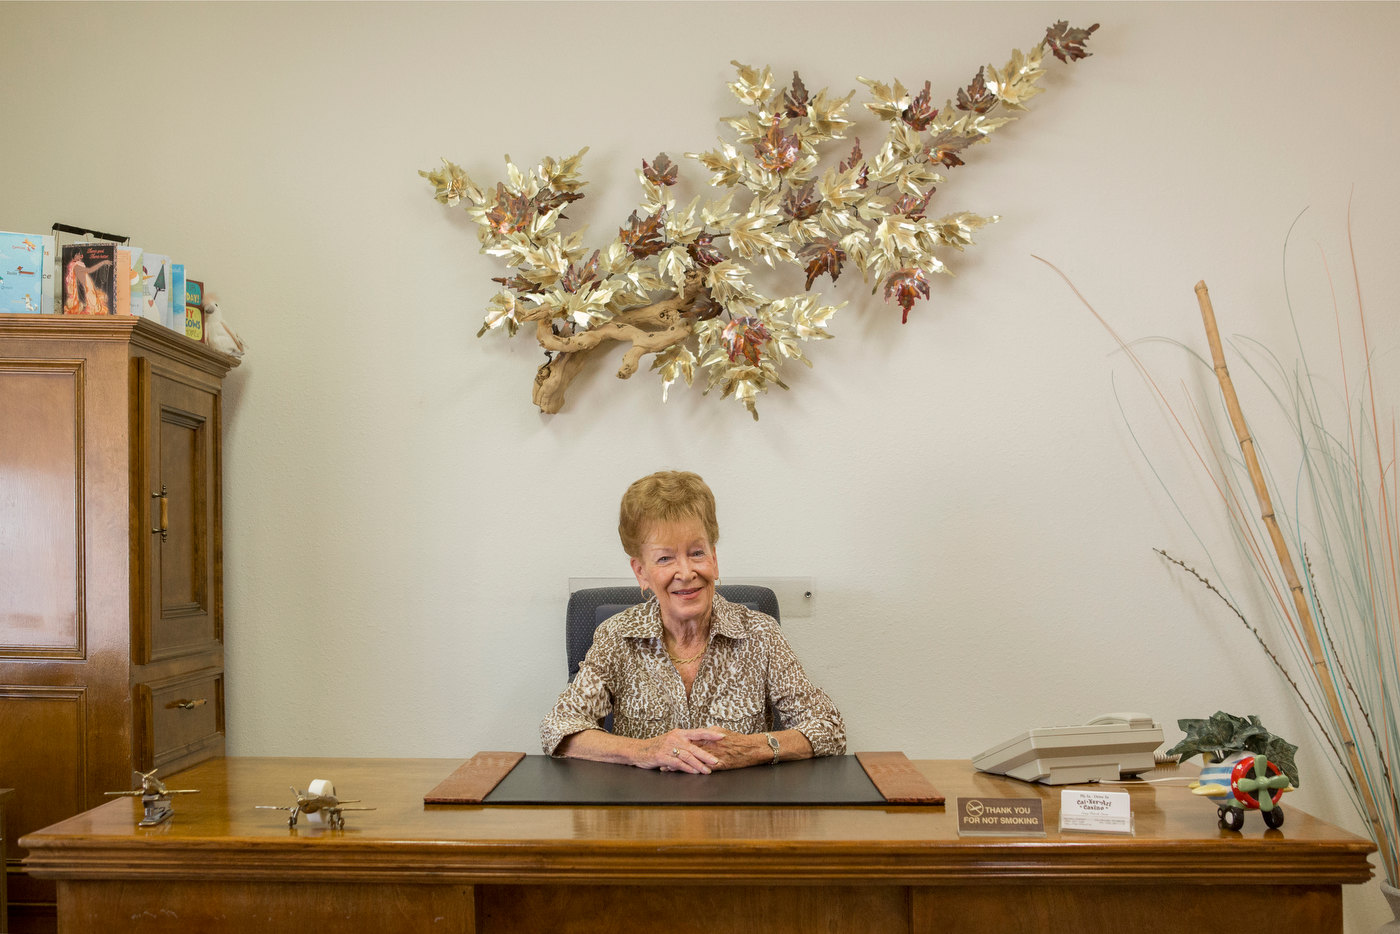 Nancy Kidwell, 80, founder and owner of CalNevAri, Nevada, pop. 350, for Le Parisien Magazine.